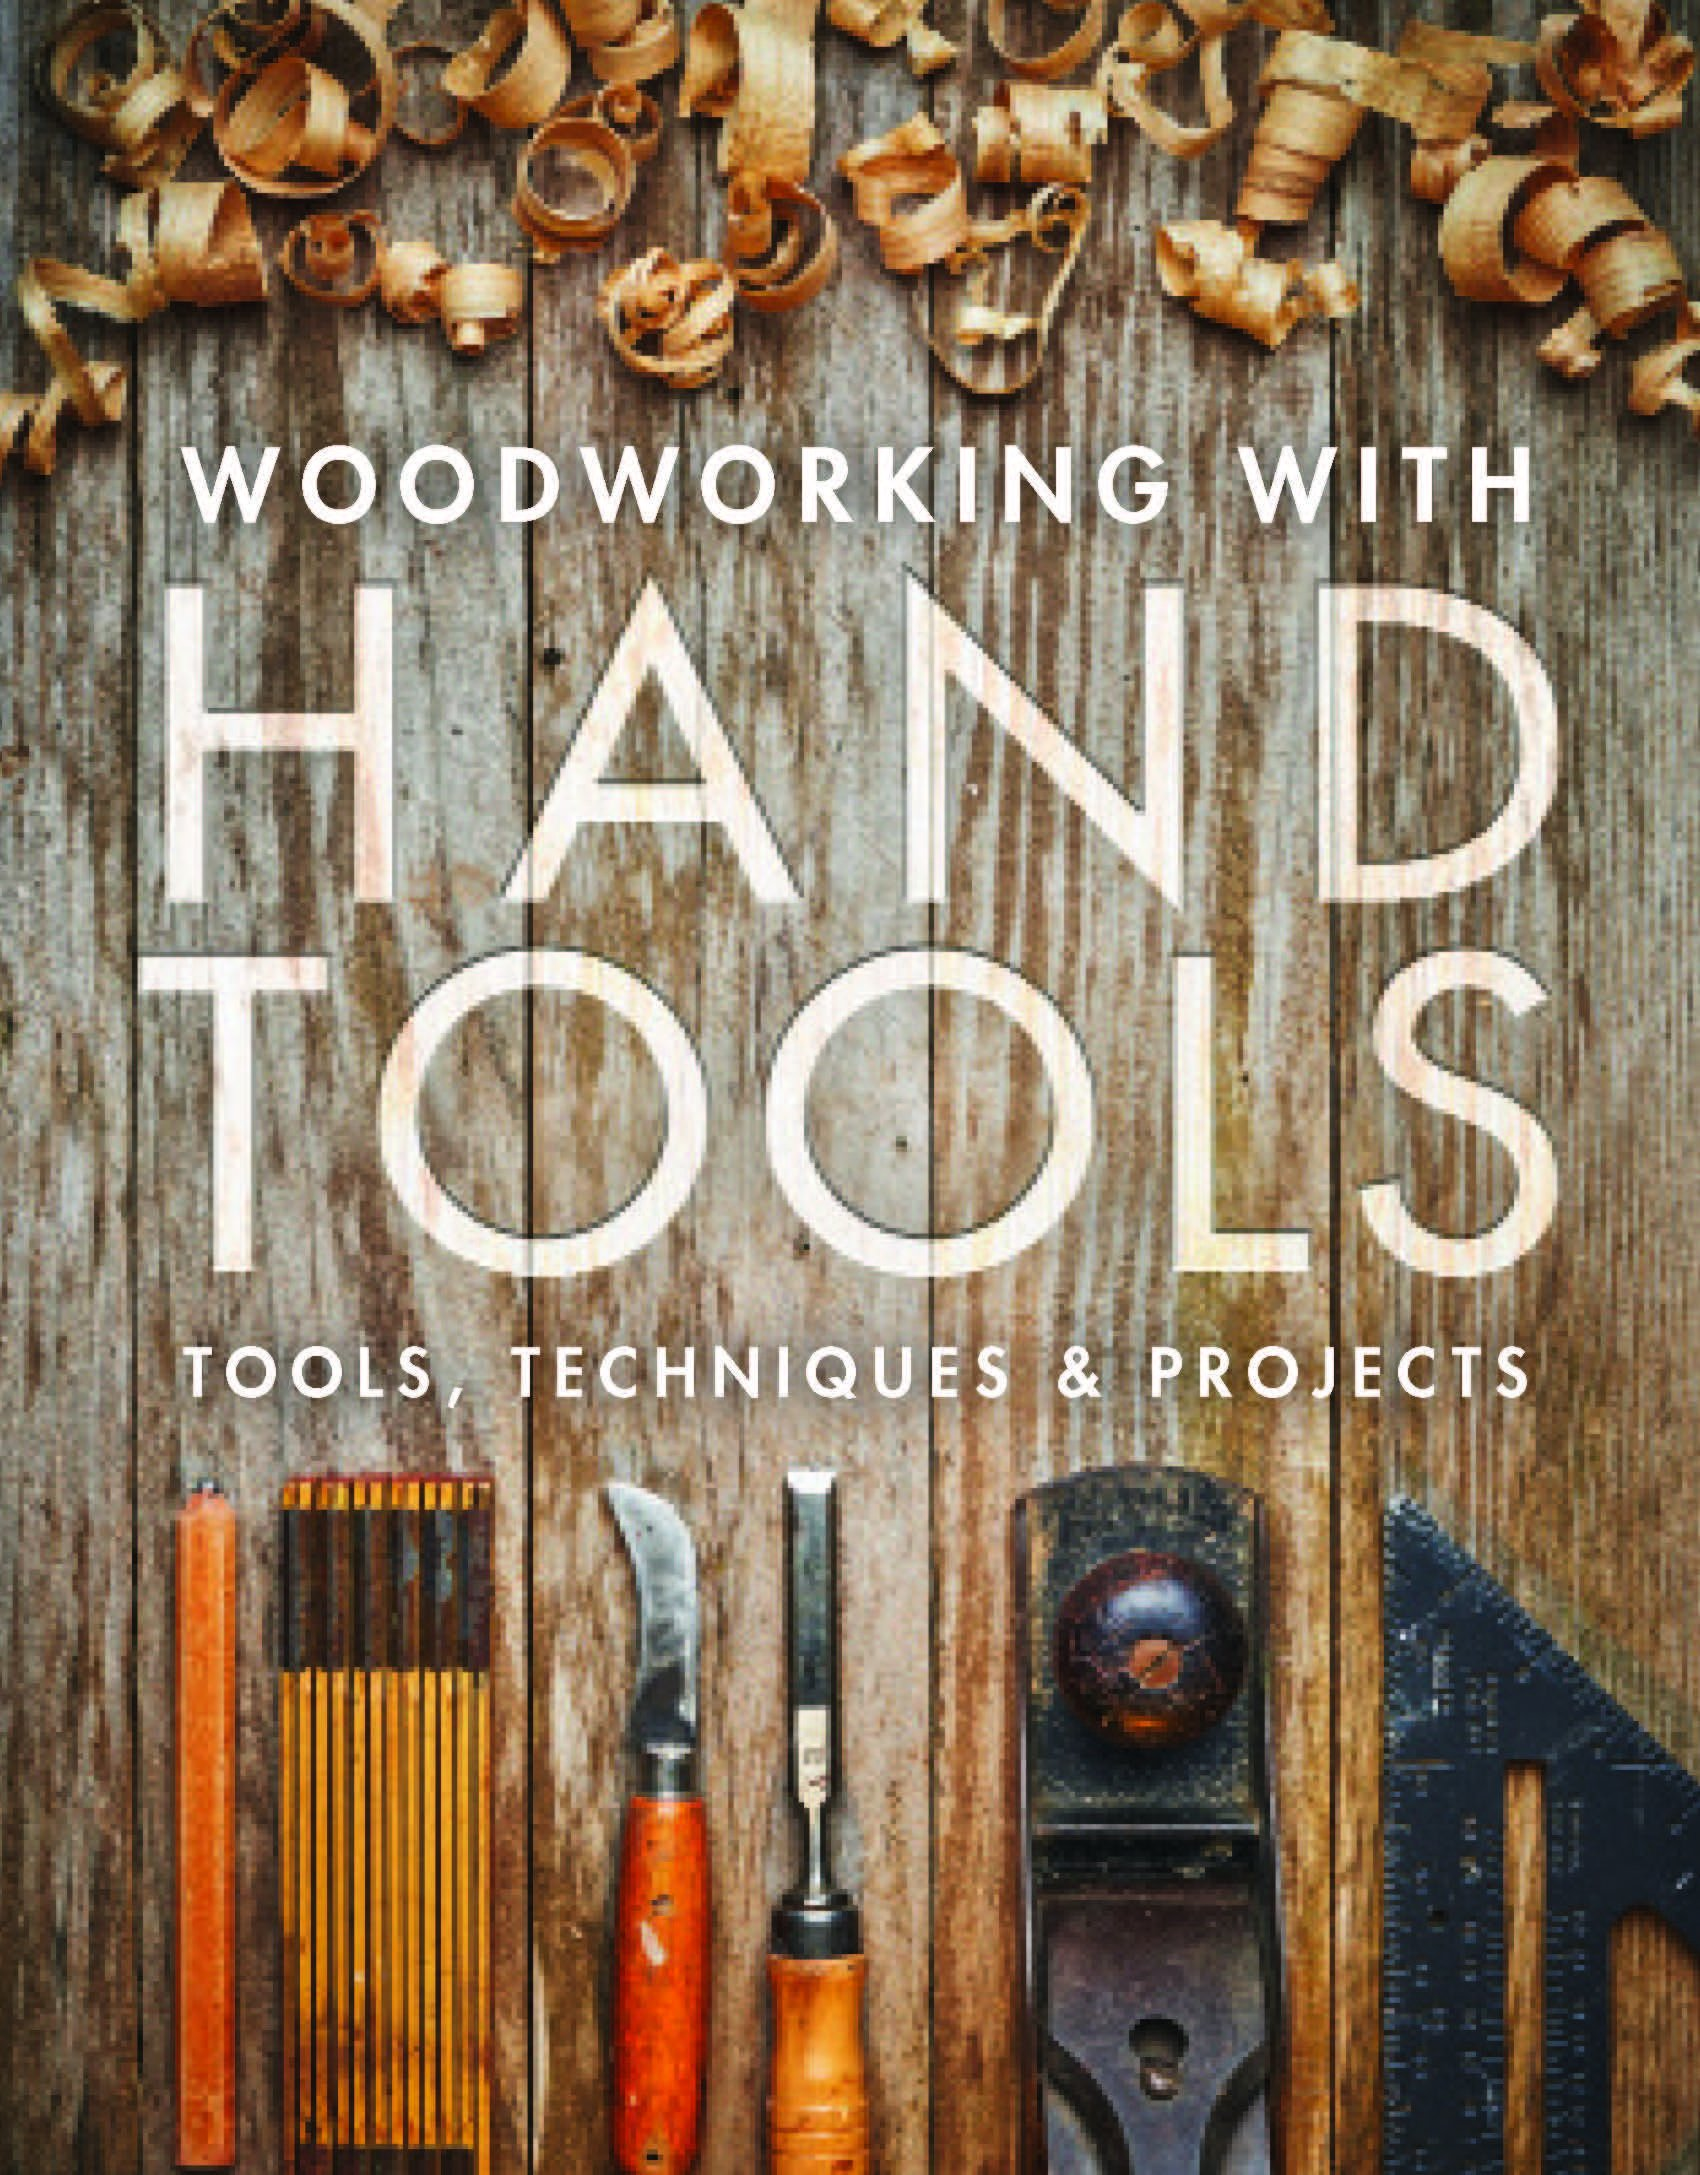 Woodworking With Hand Tools  Tools Techniques And Projects  English Edition